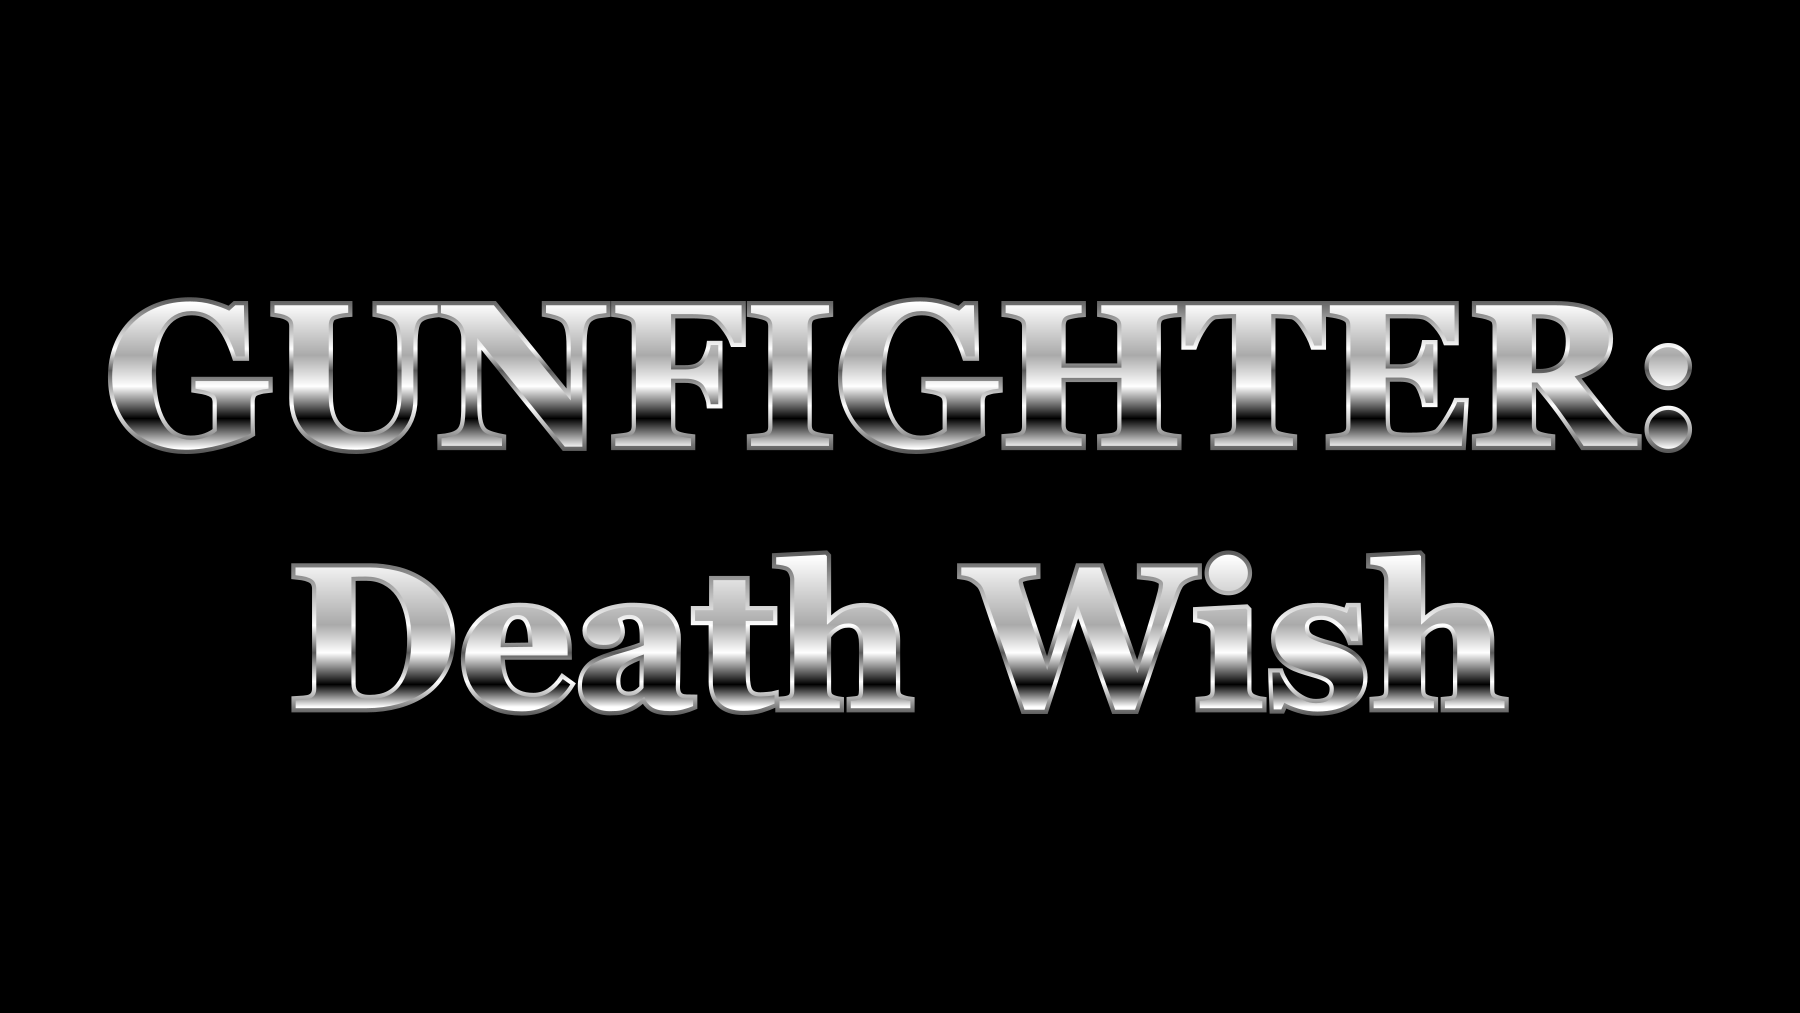 Gunfighter: Death Wish